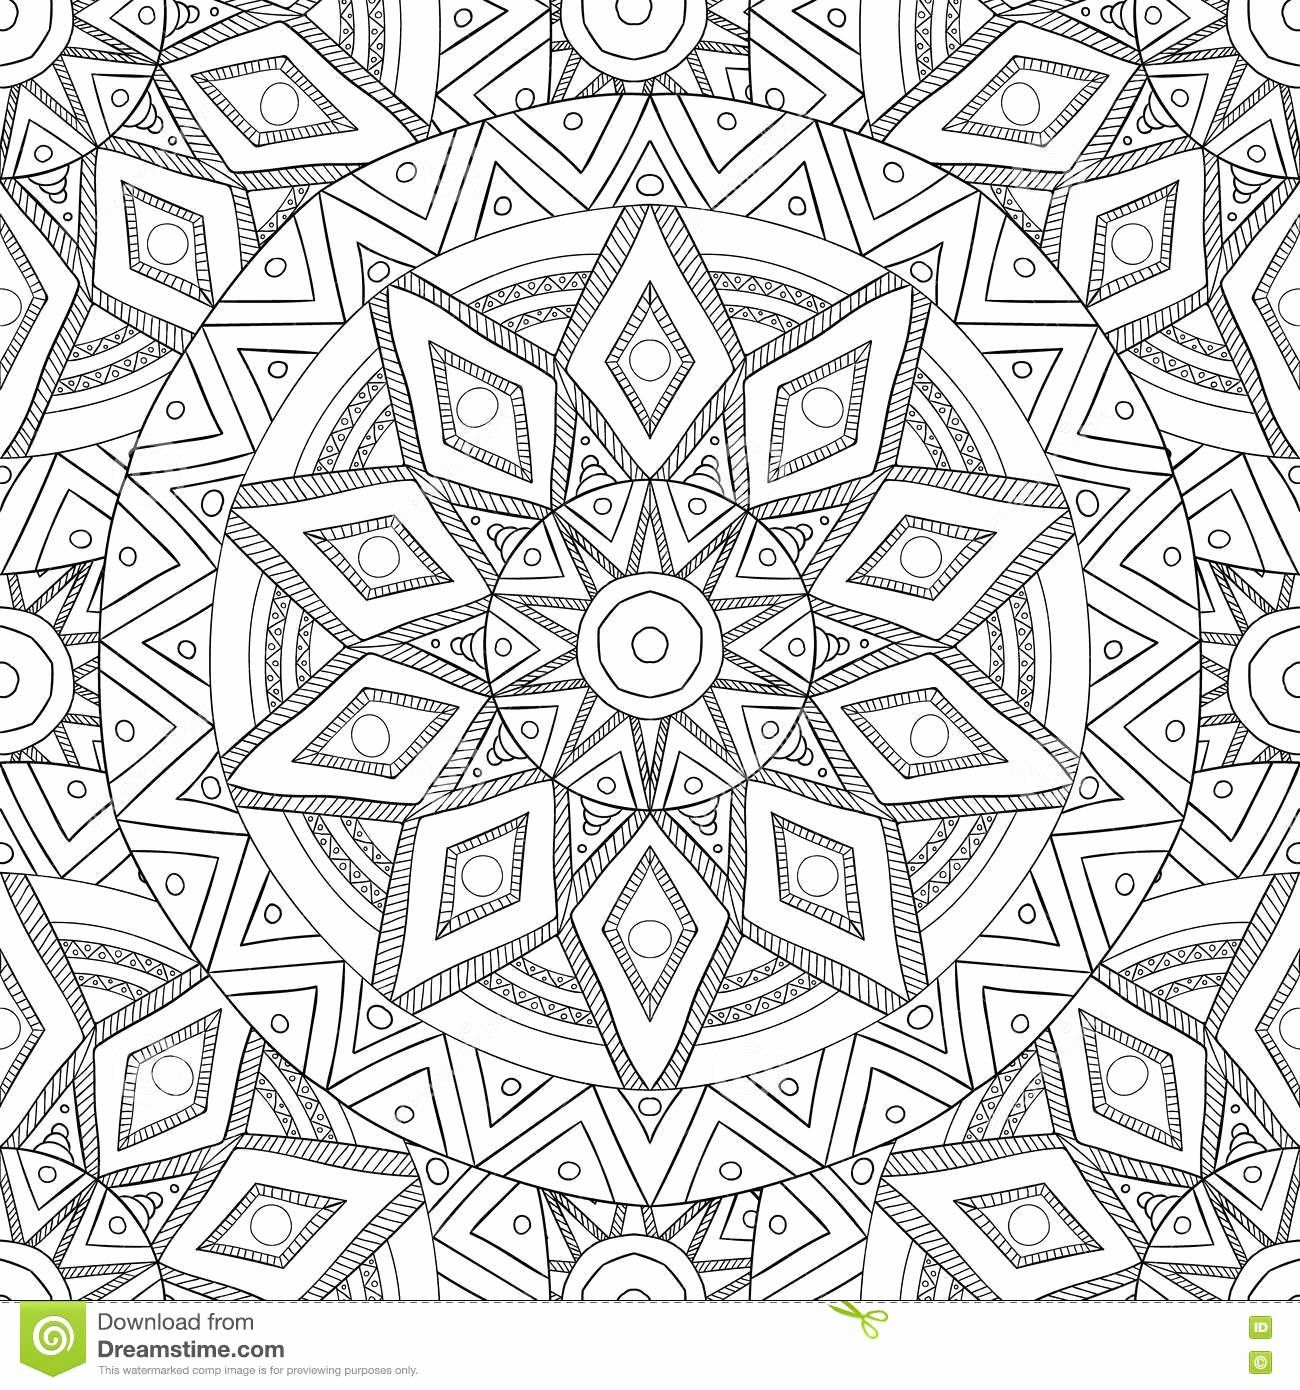 Nature Mandalas Coloring Pages Doverpublications Com With